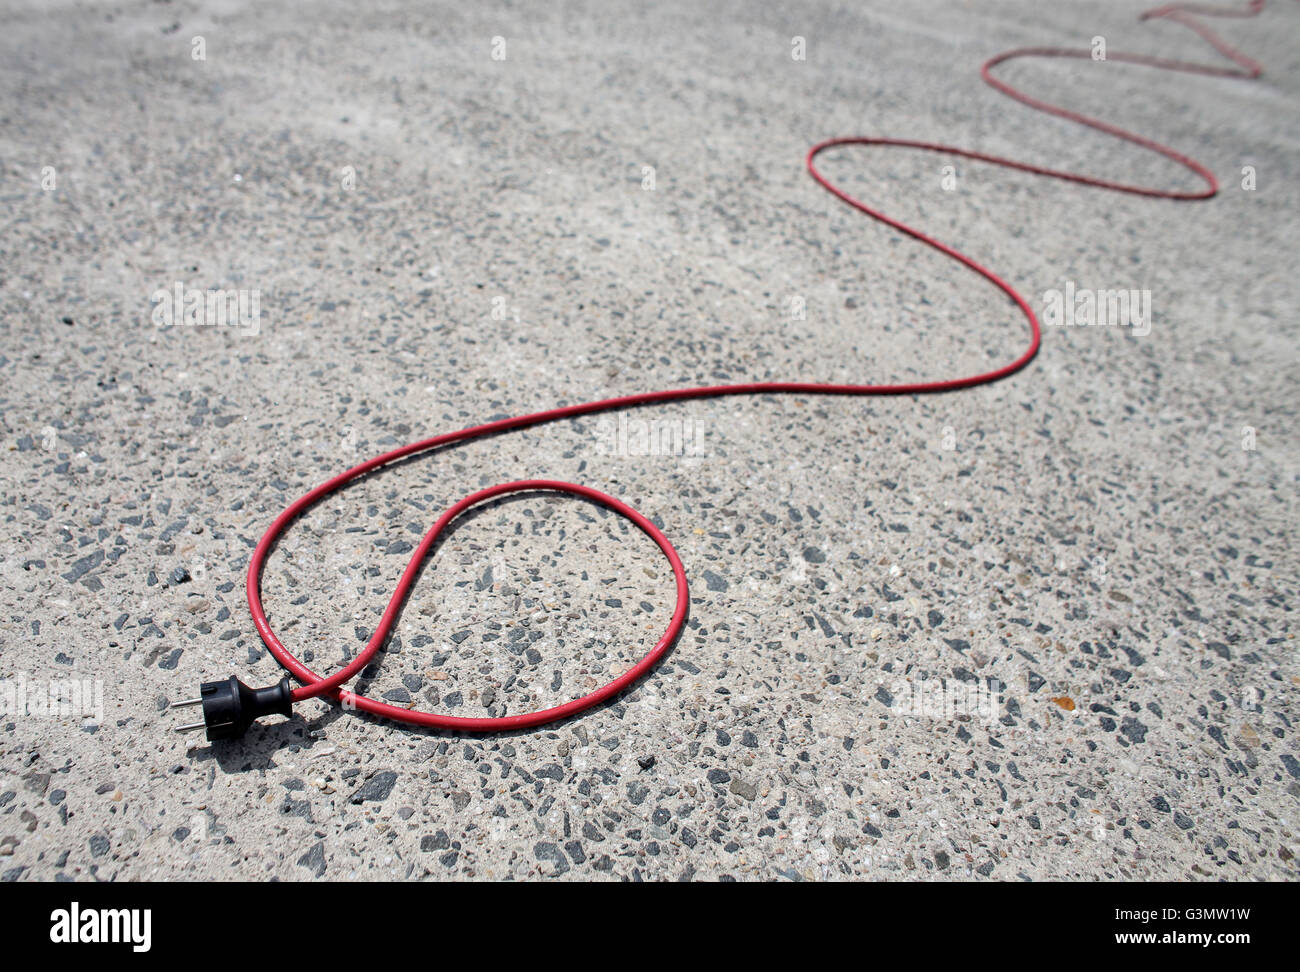 Symbolic image - A red electric cable behind a BMW i3 electric car ...